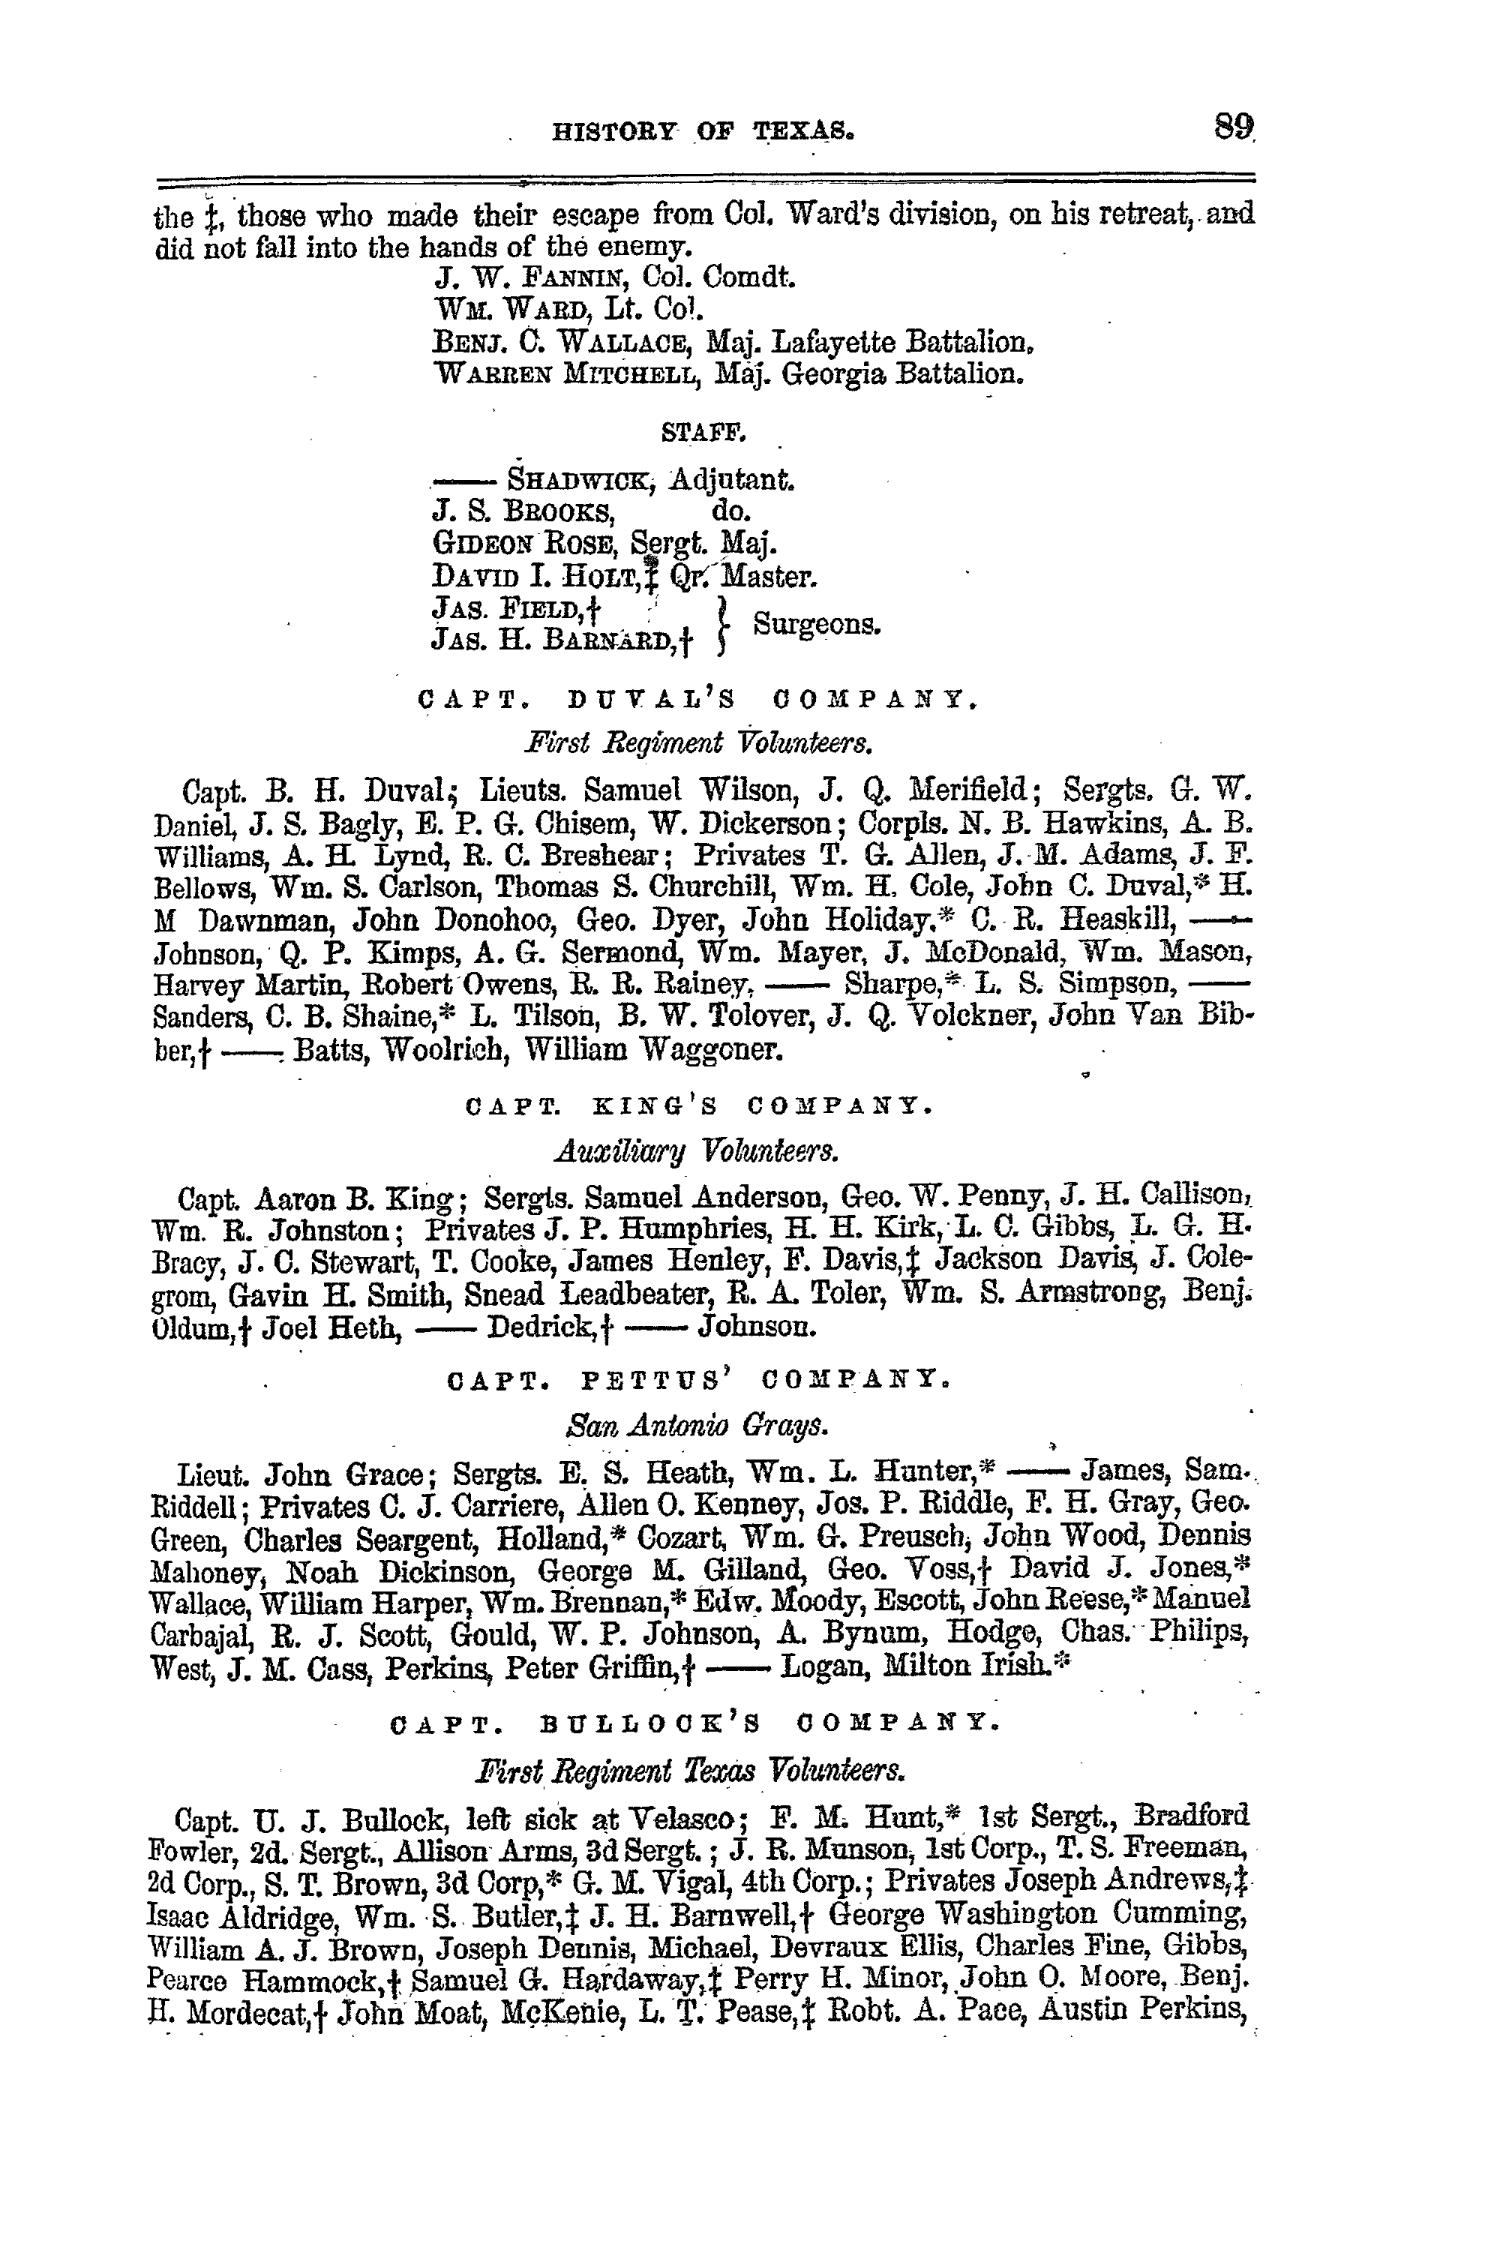 The Texas Almanac, for 1860, with Statistics, Historical and Biographical Sketches, &c., Relating to Texas.                                                                                                      89